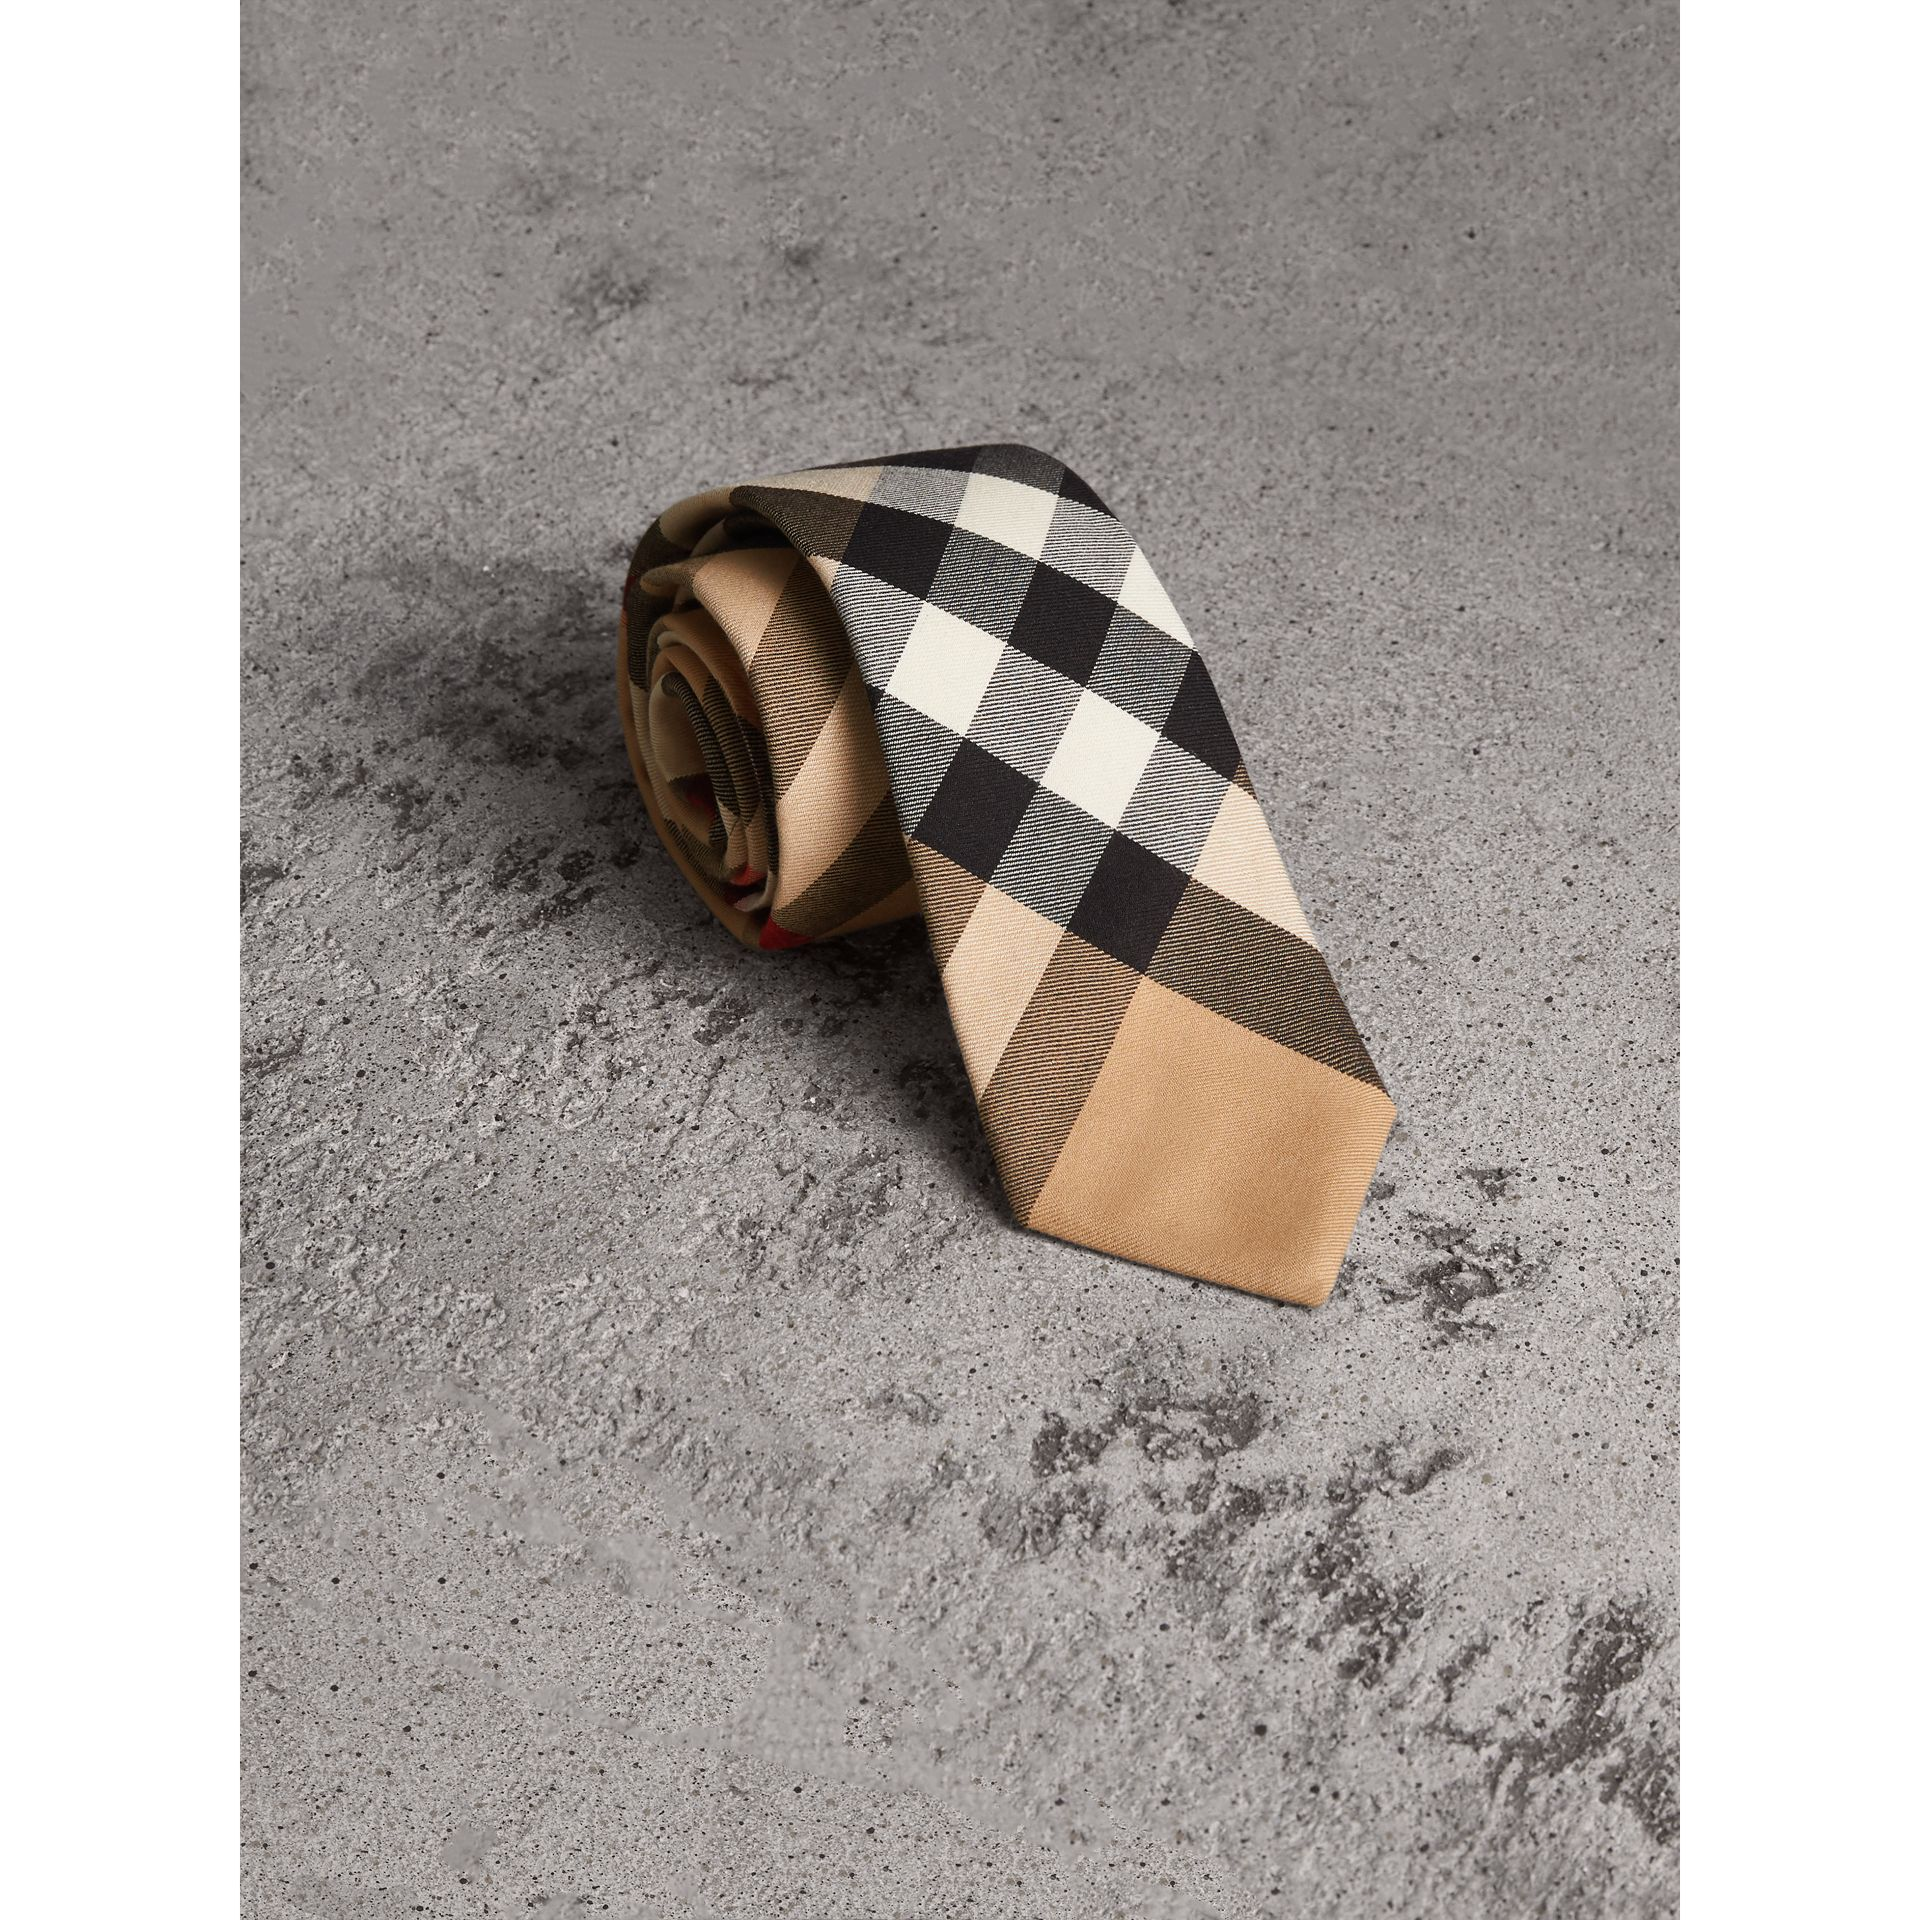 Modern Cut Check Cotton Cashmere Tie in Camel - Men | Burberry - gallery image 1